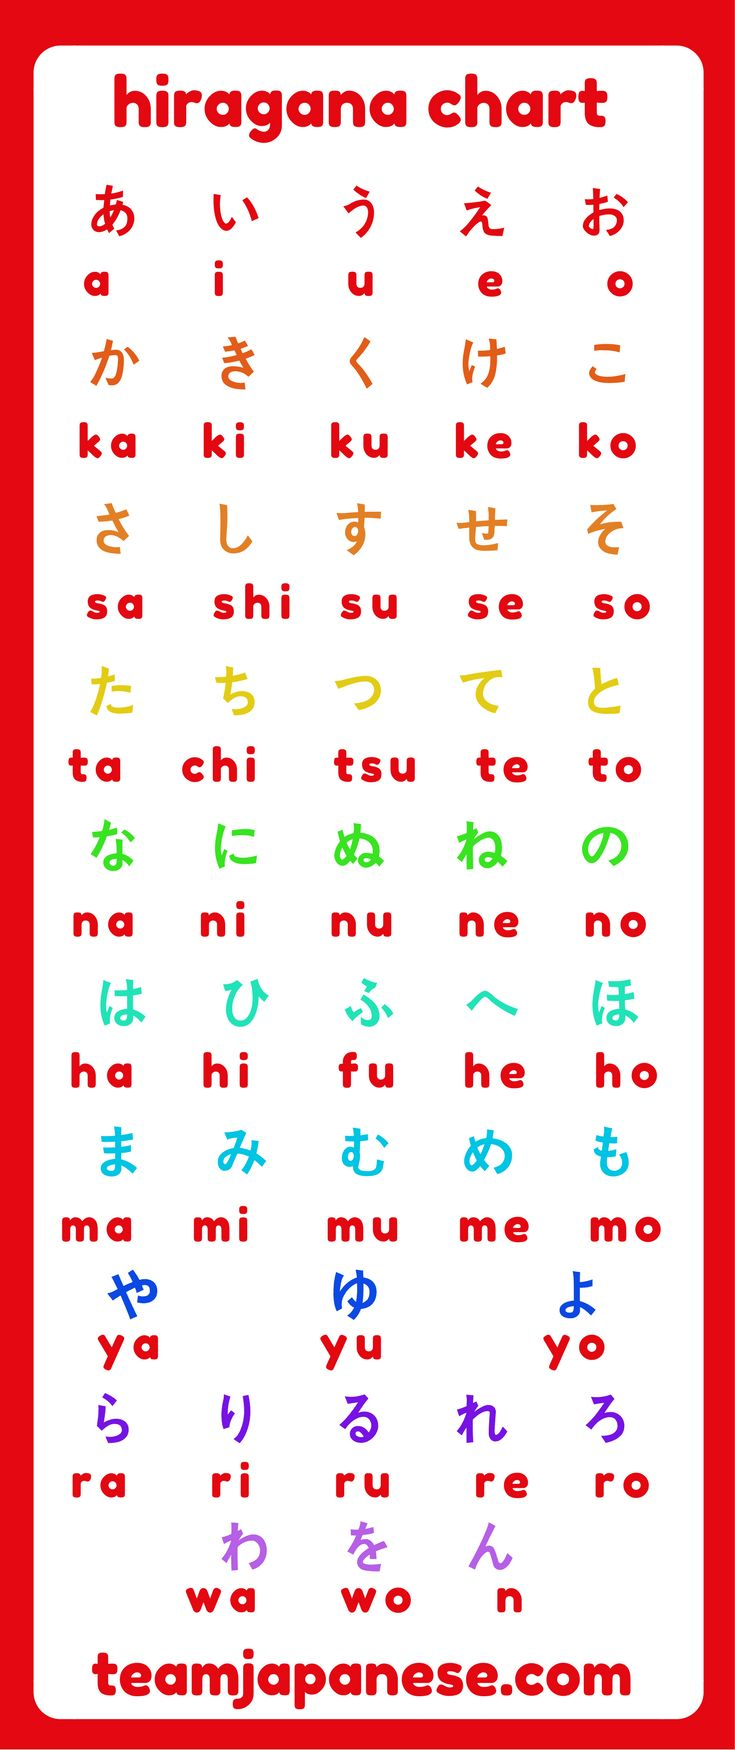 Learn hiragana with this beautiful hiragana chart by Team Japanese! Visit the blog for lots more Japanese language learning resources!